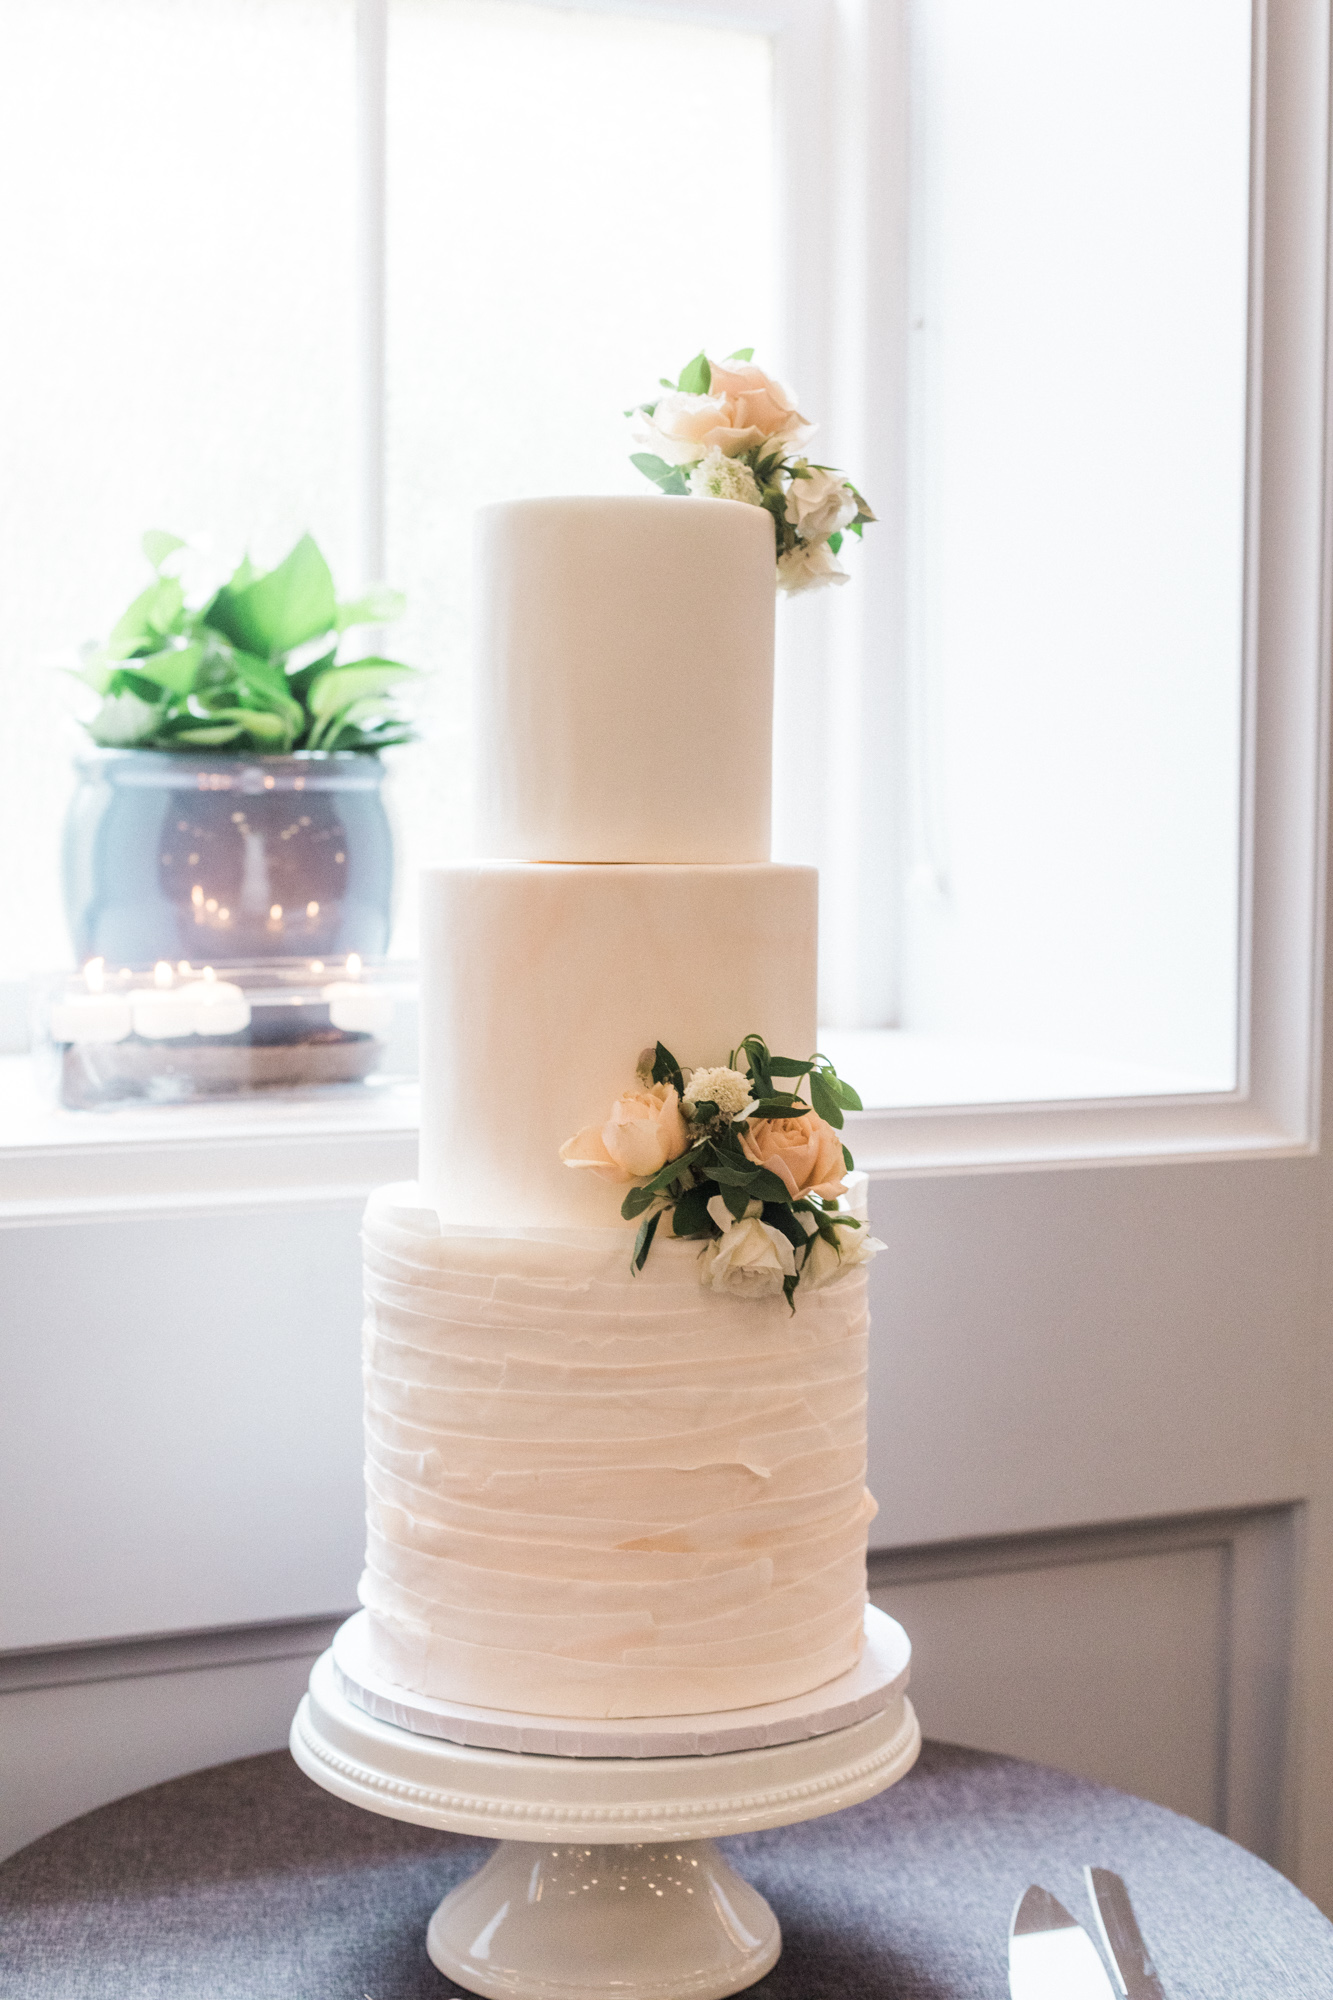 ButtercreamBakeshopWeddingCakeLineHotelWeddingDC2019PlumePhotography